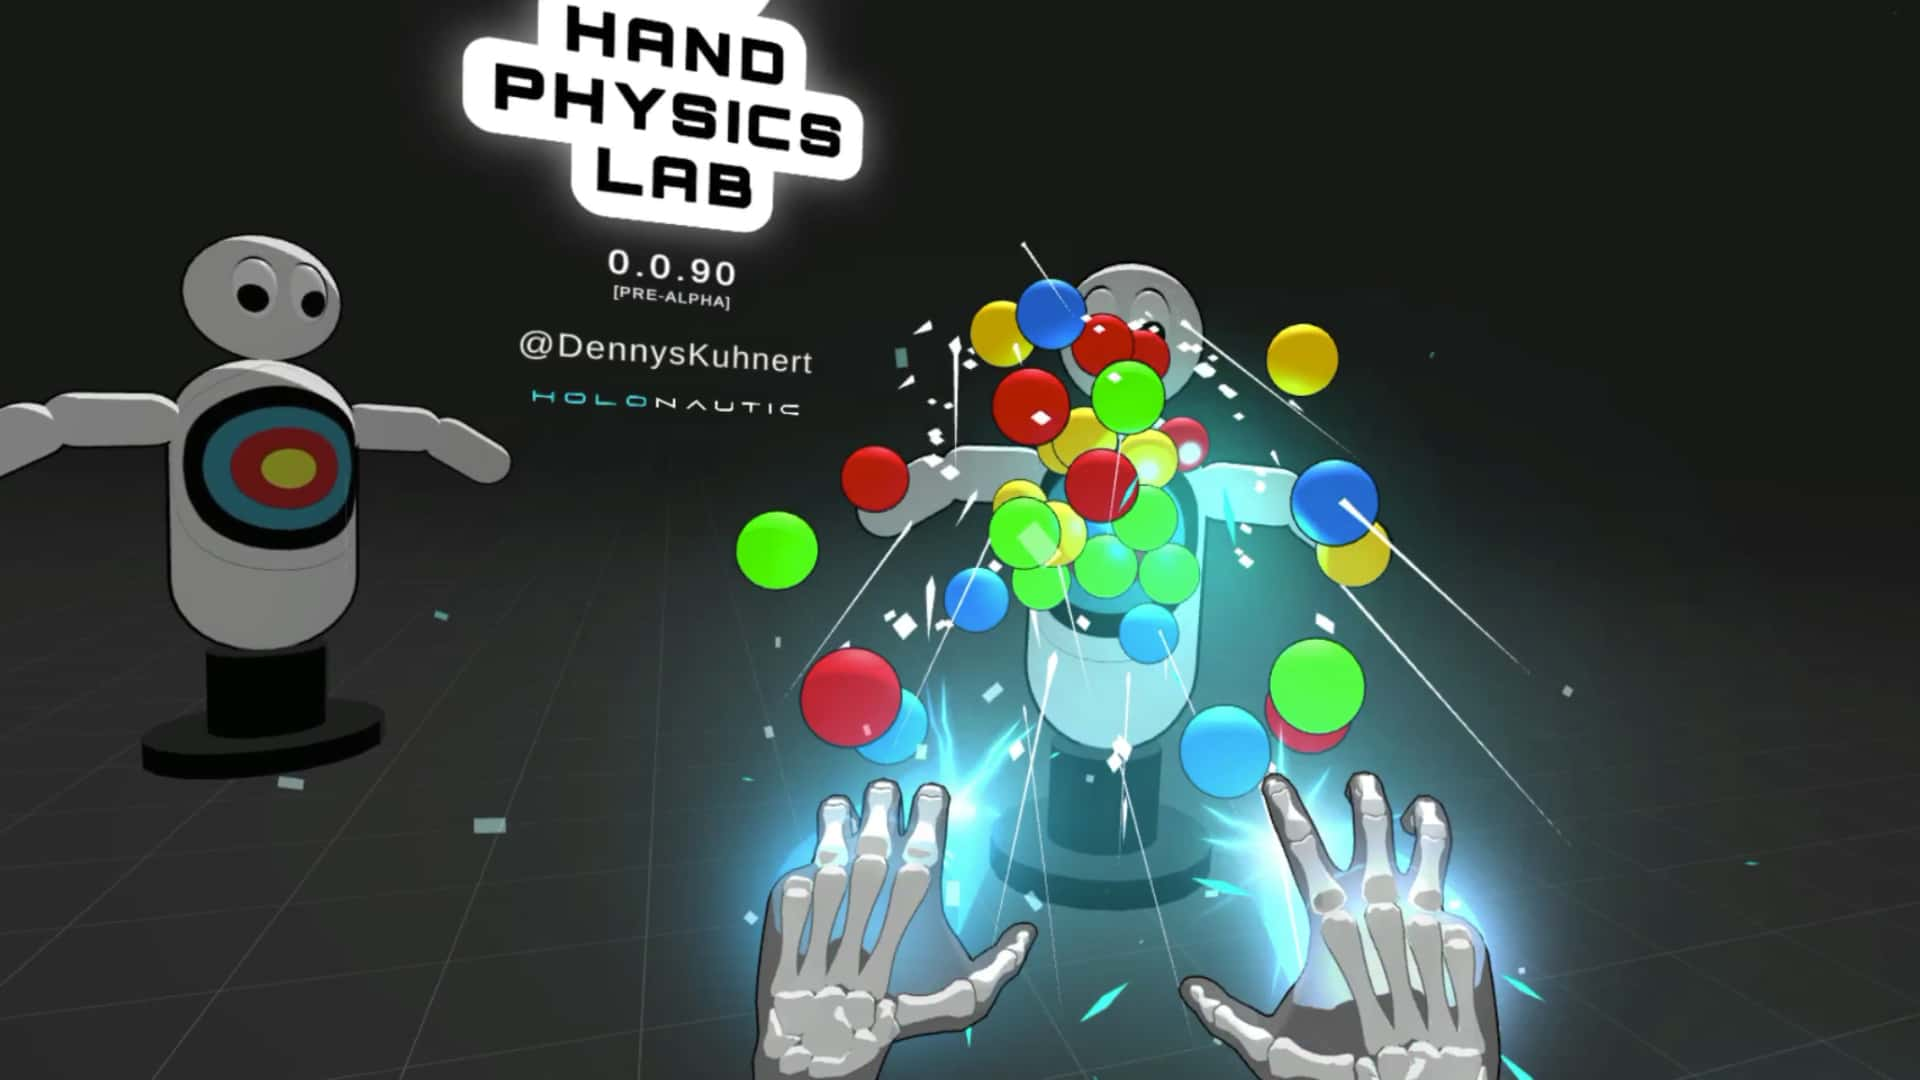 hands Physics Lab force push